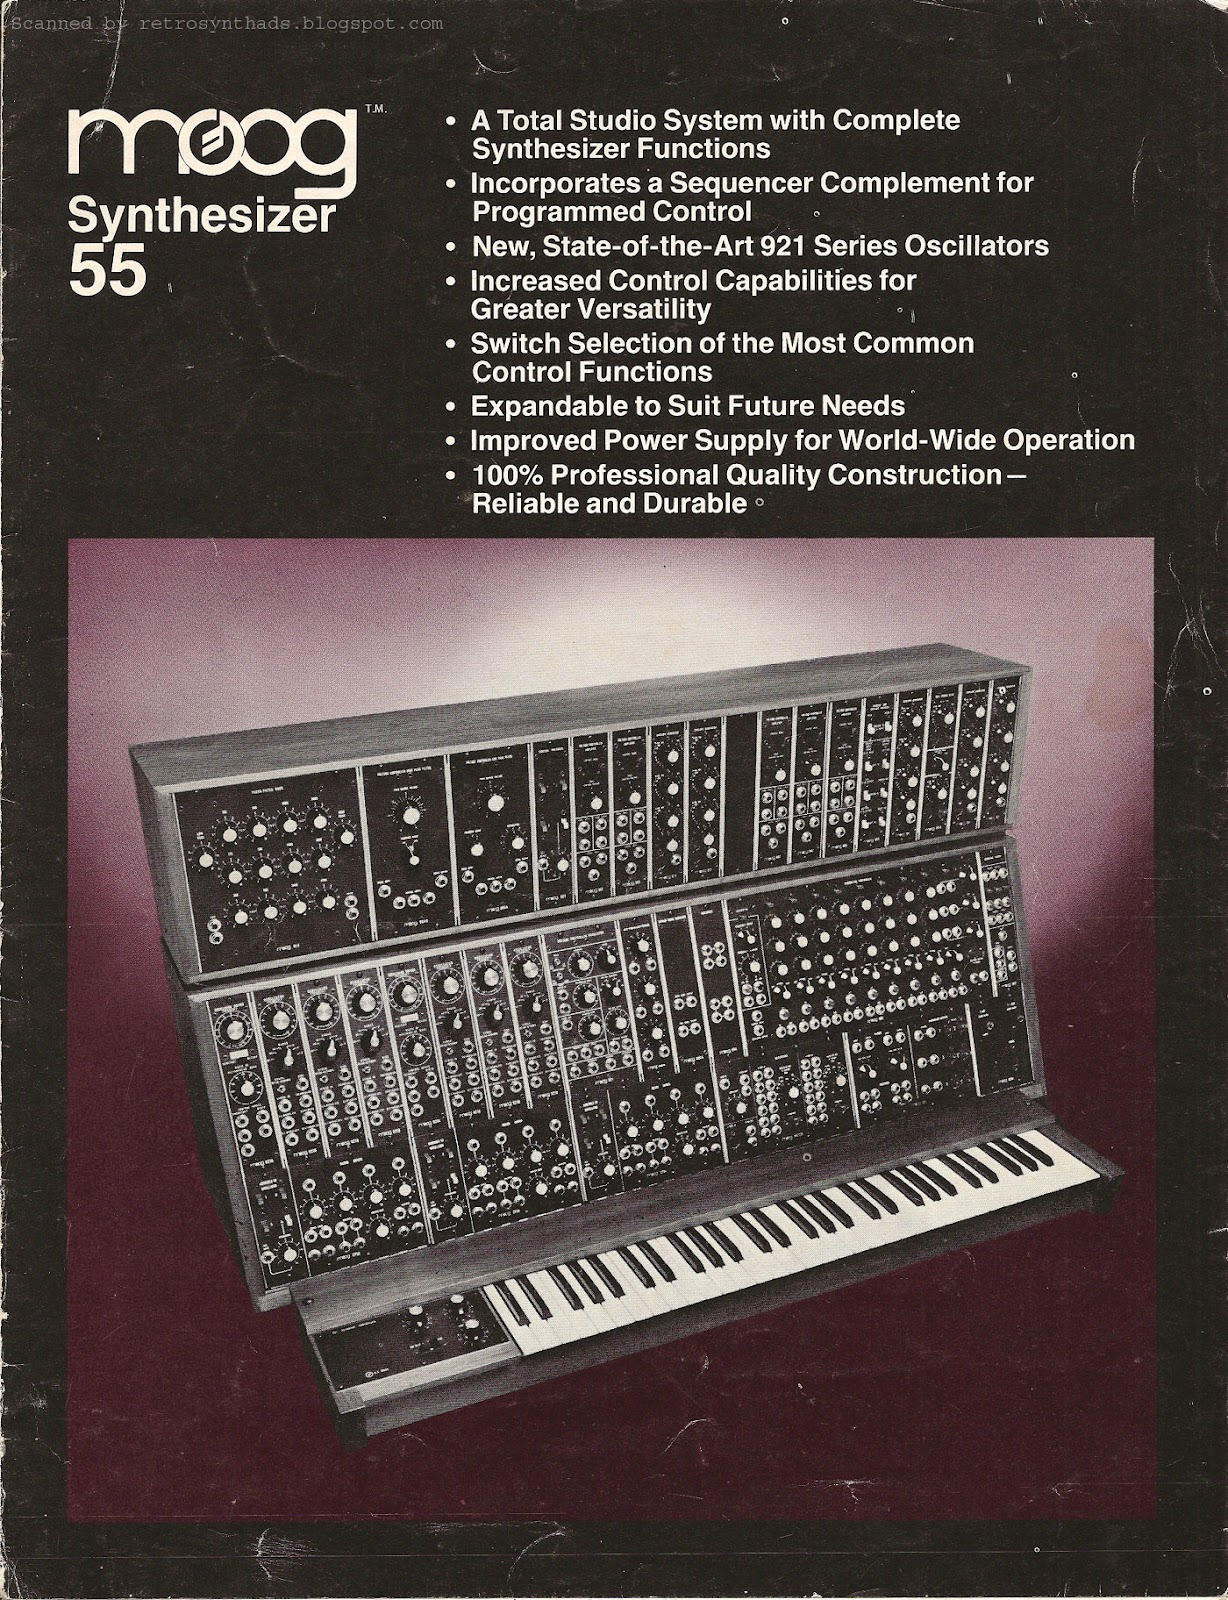 http://retrosynthads.blogspot.ca/2012/05/moog-synthesizer-55-system-six-page.html